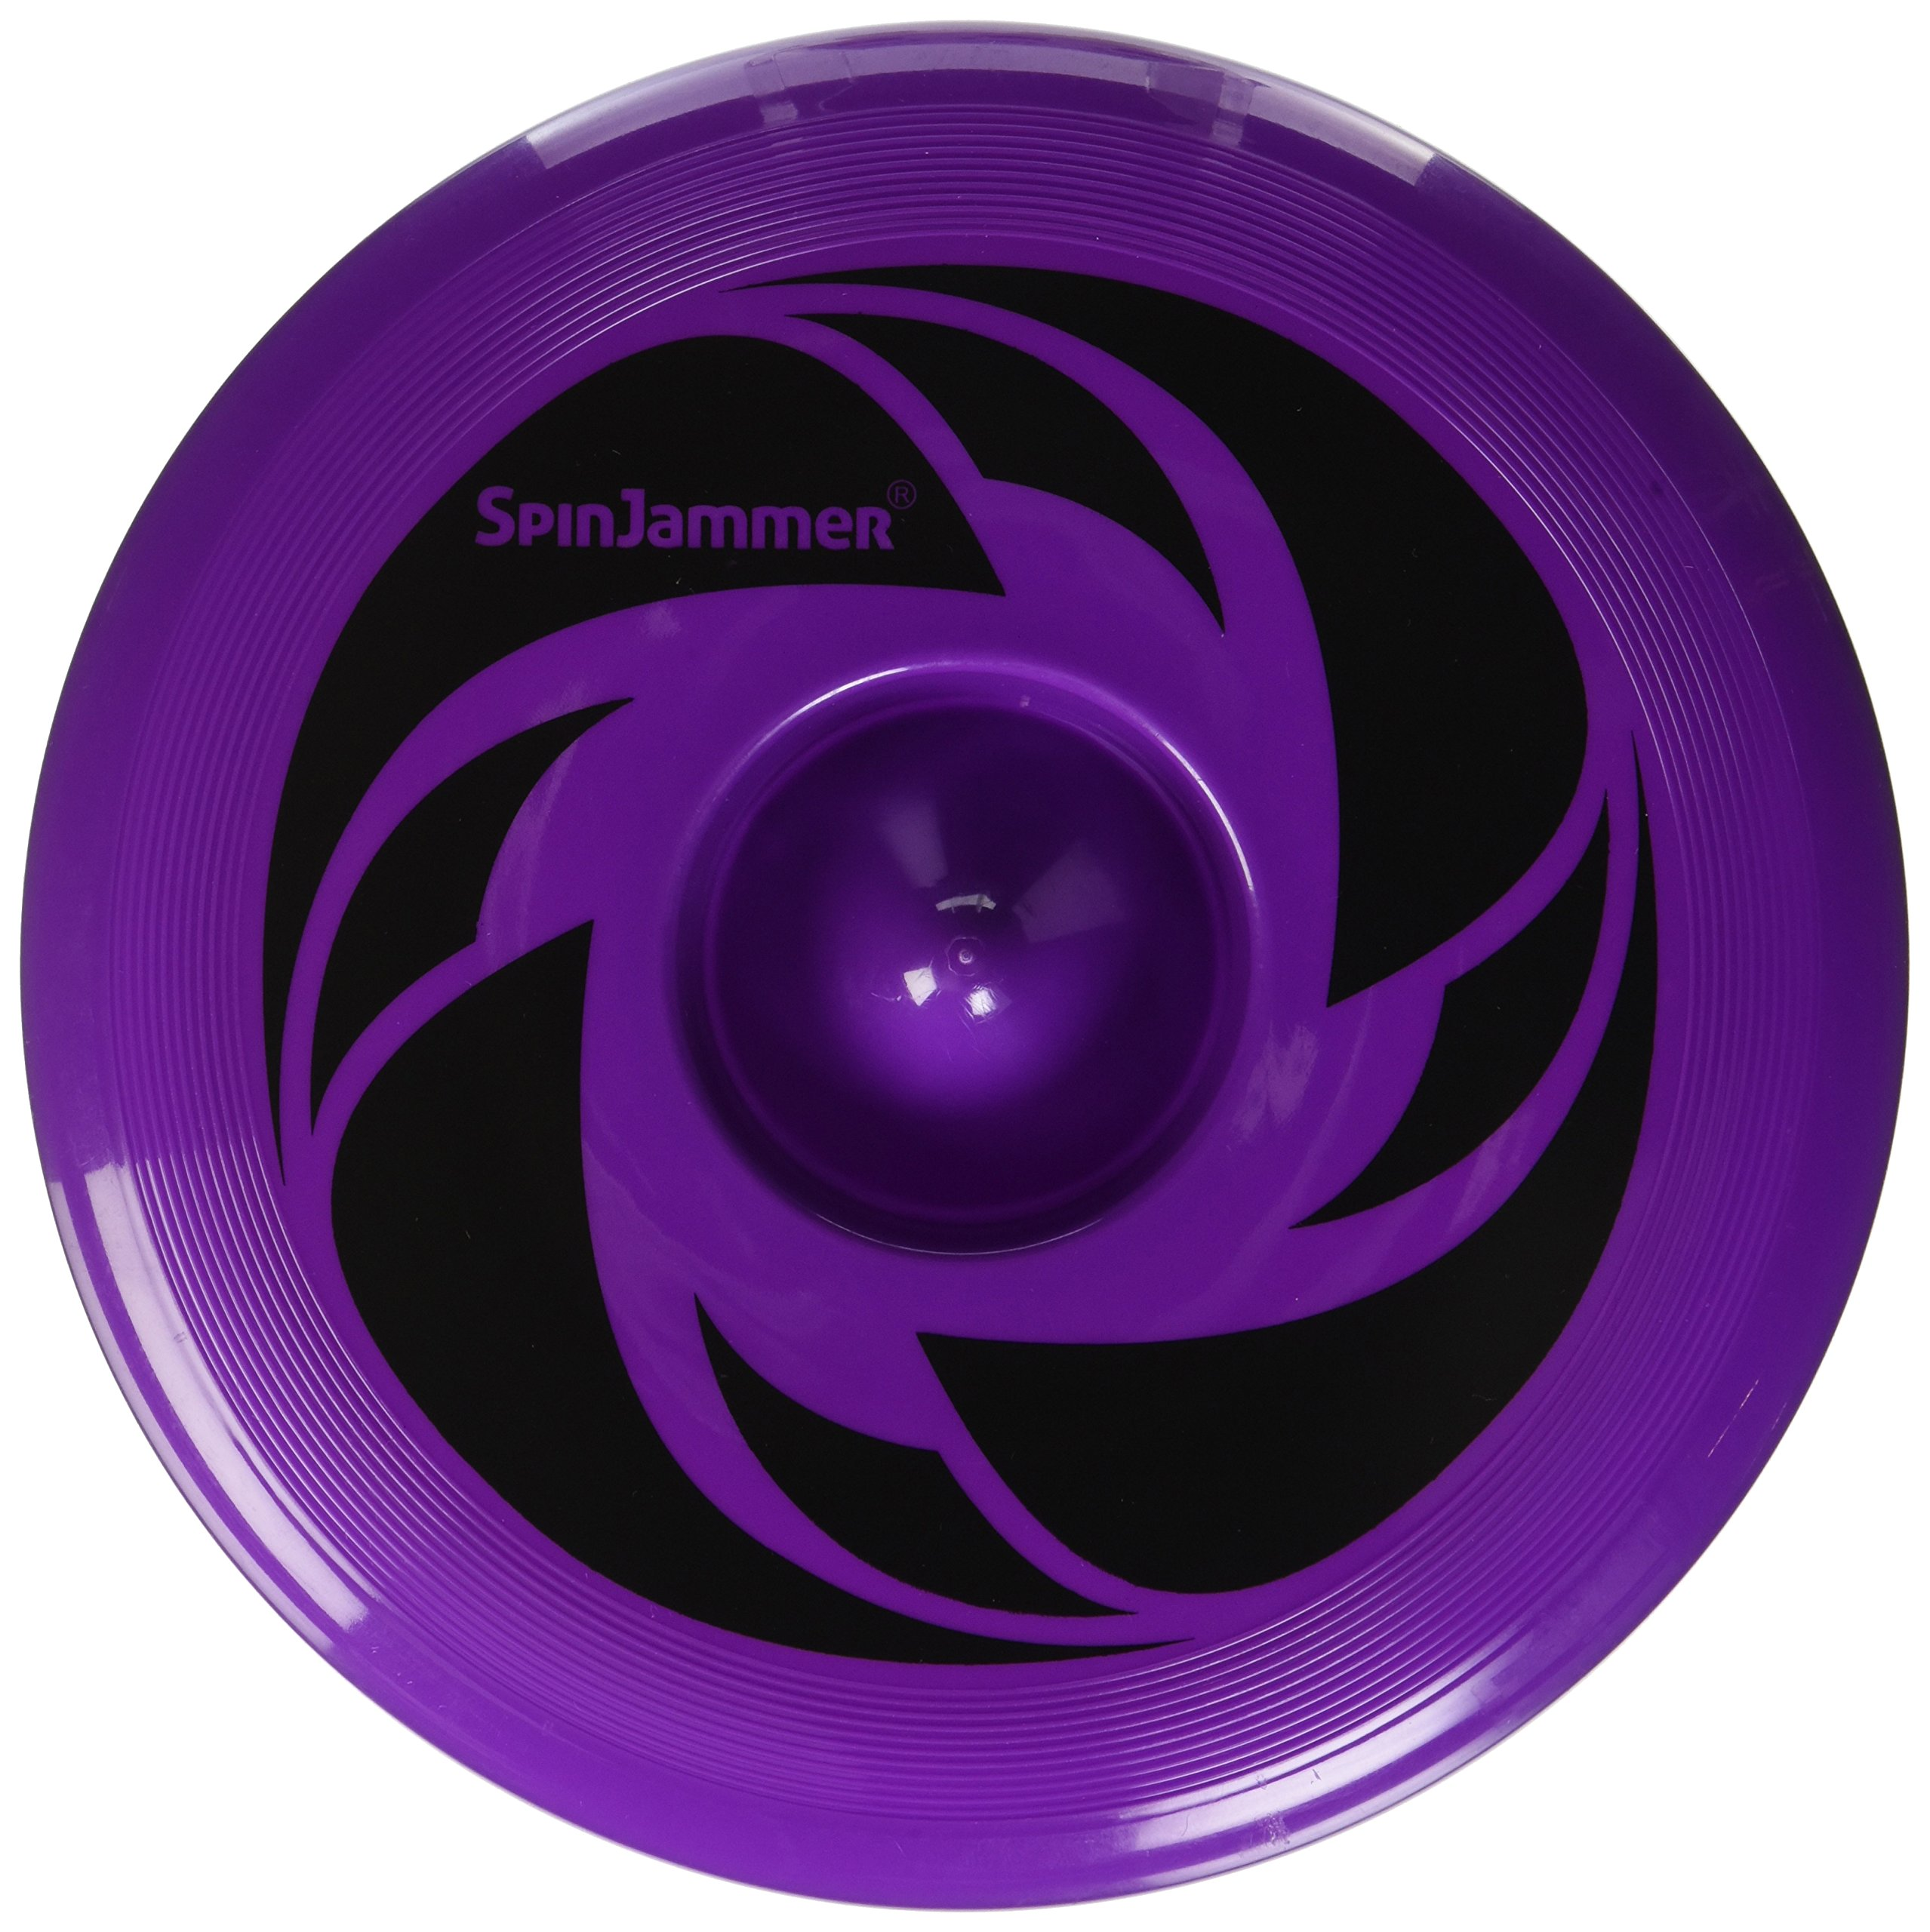 Spin Jammer 3090 Deluxe Flying Disc, 10'' Diameter by Spin Jammer